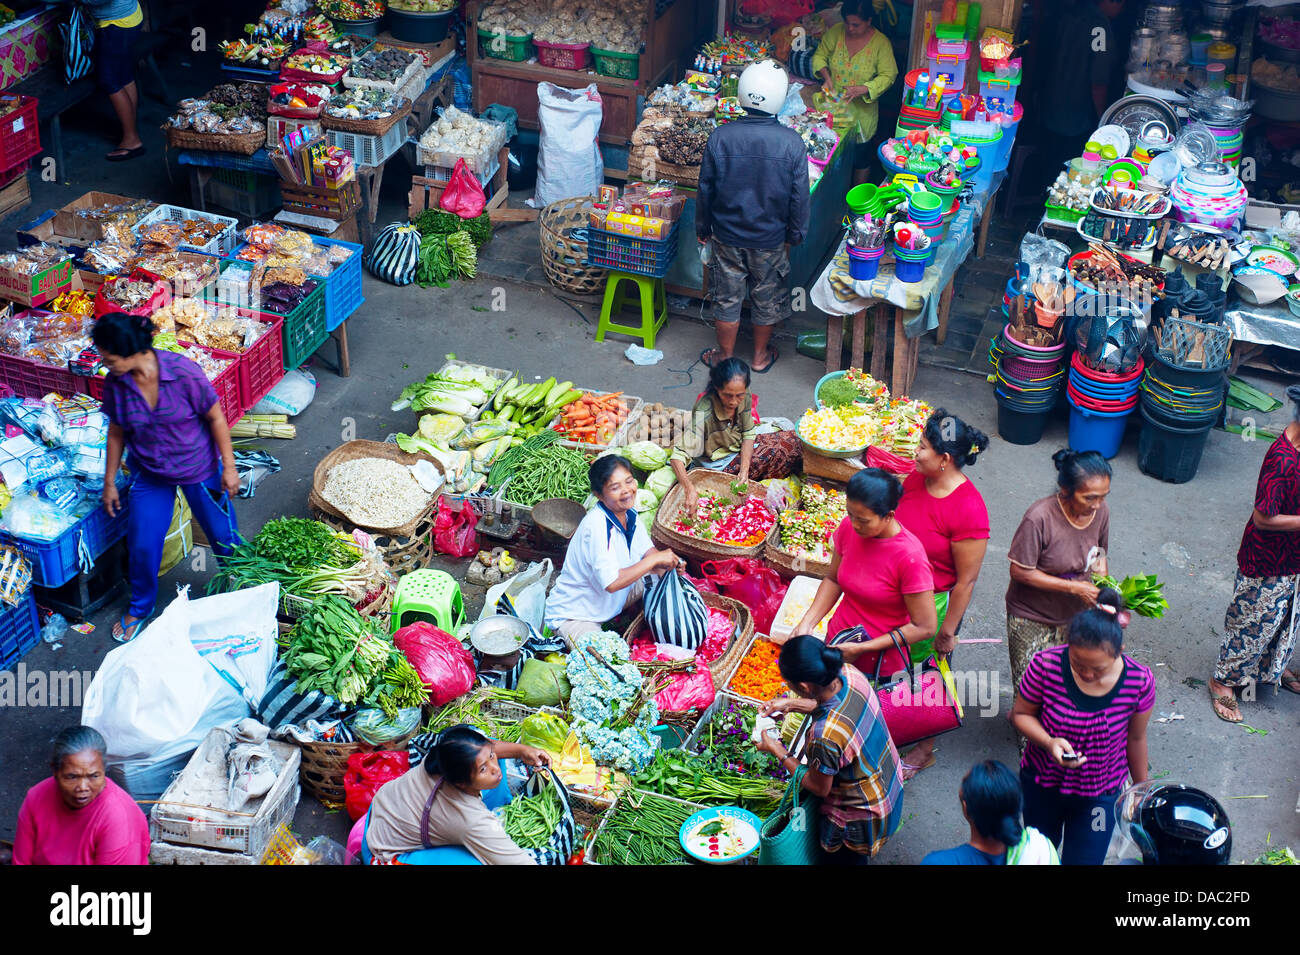 People buying a food at Ubud market in Bali, Indonesia. - Stock Image